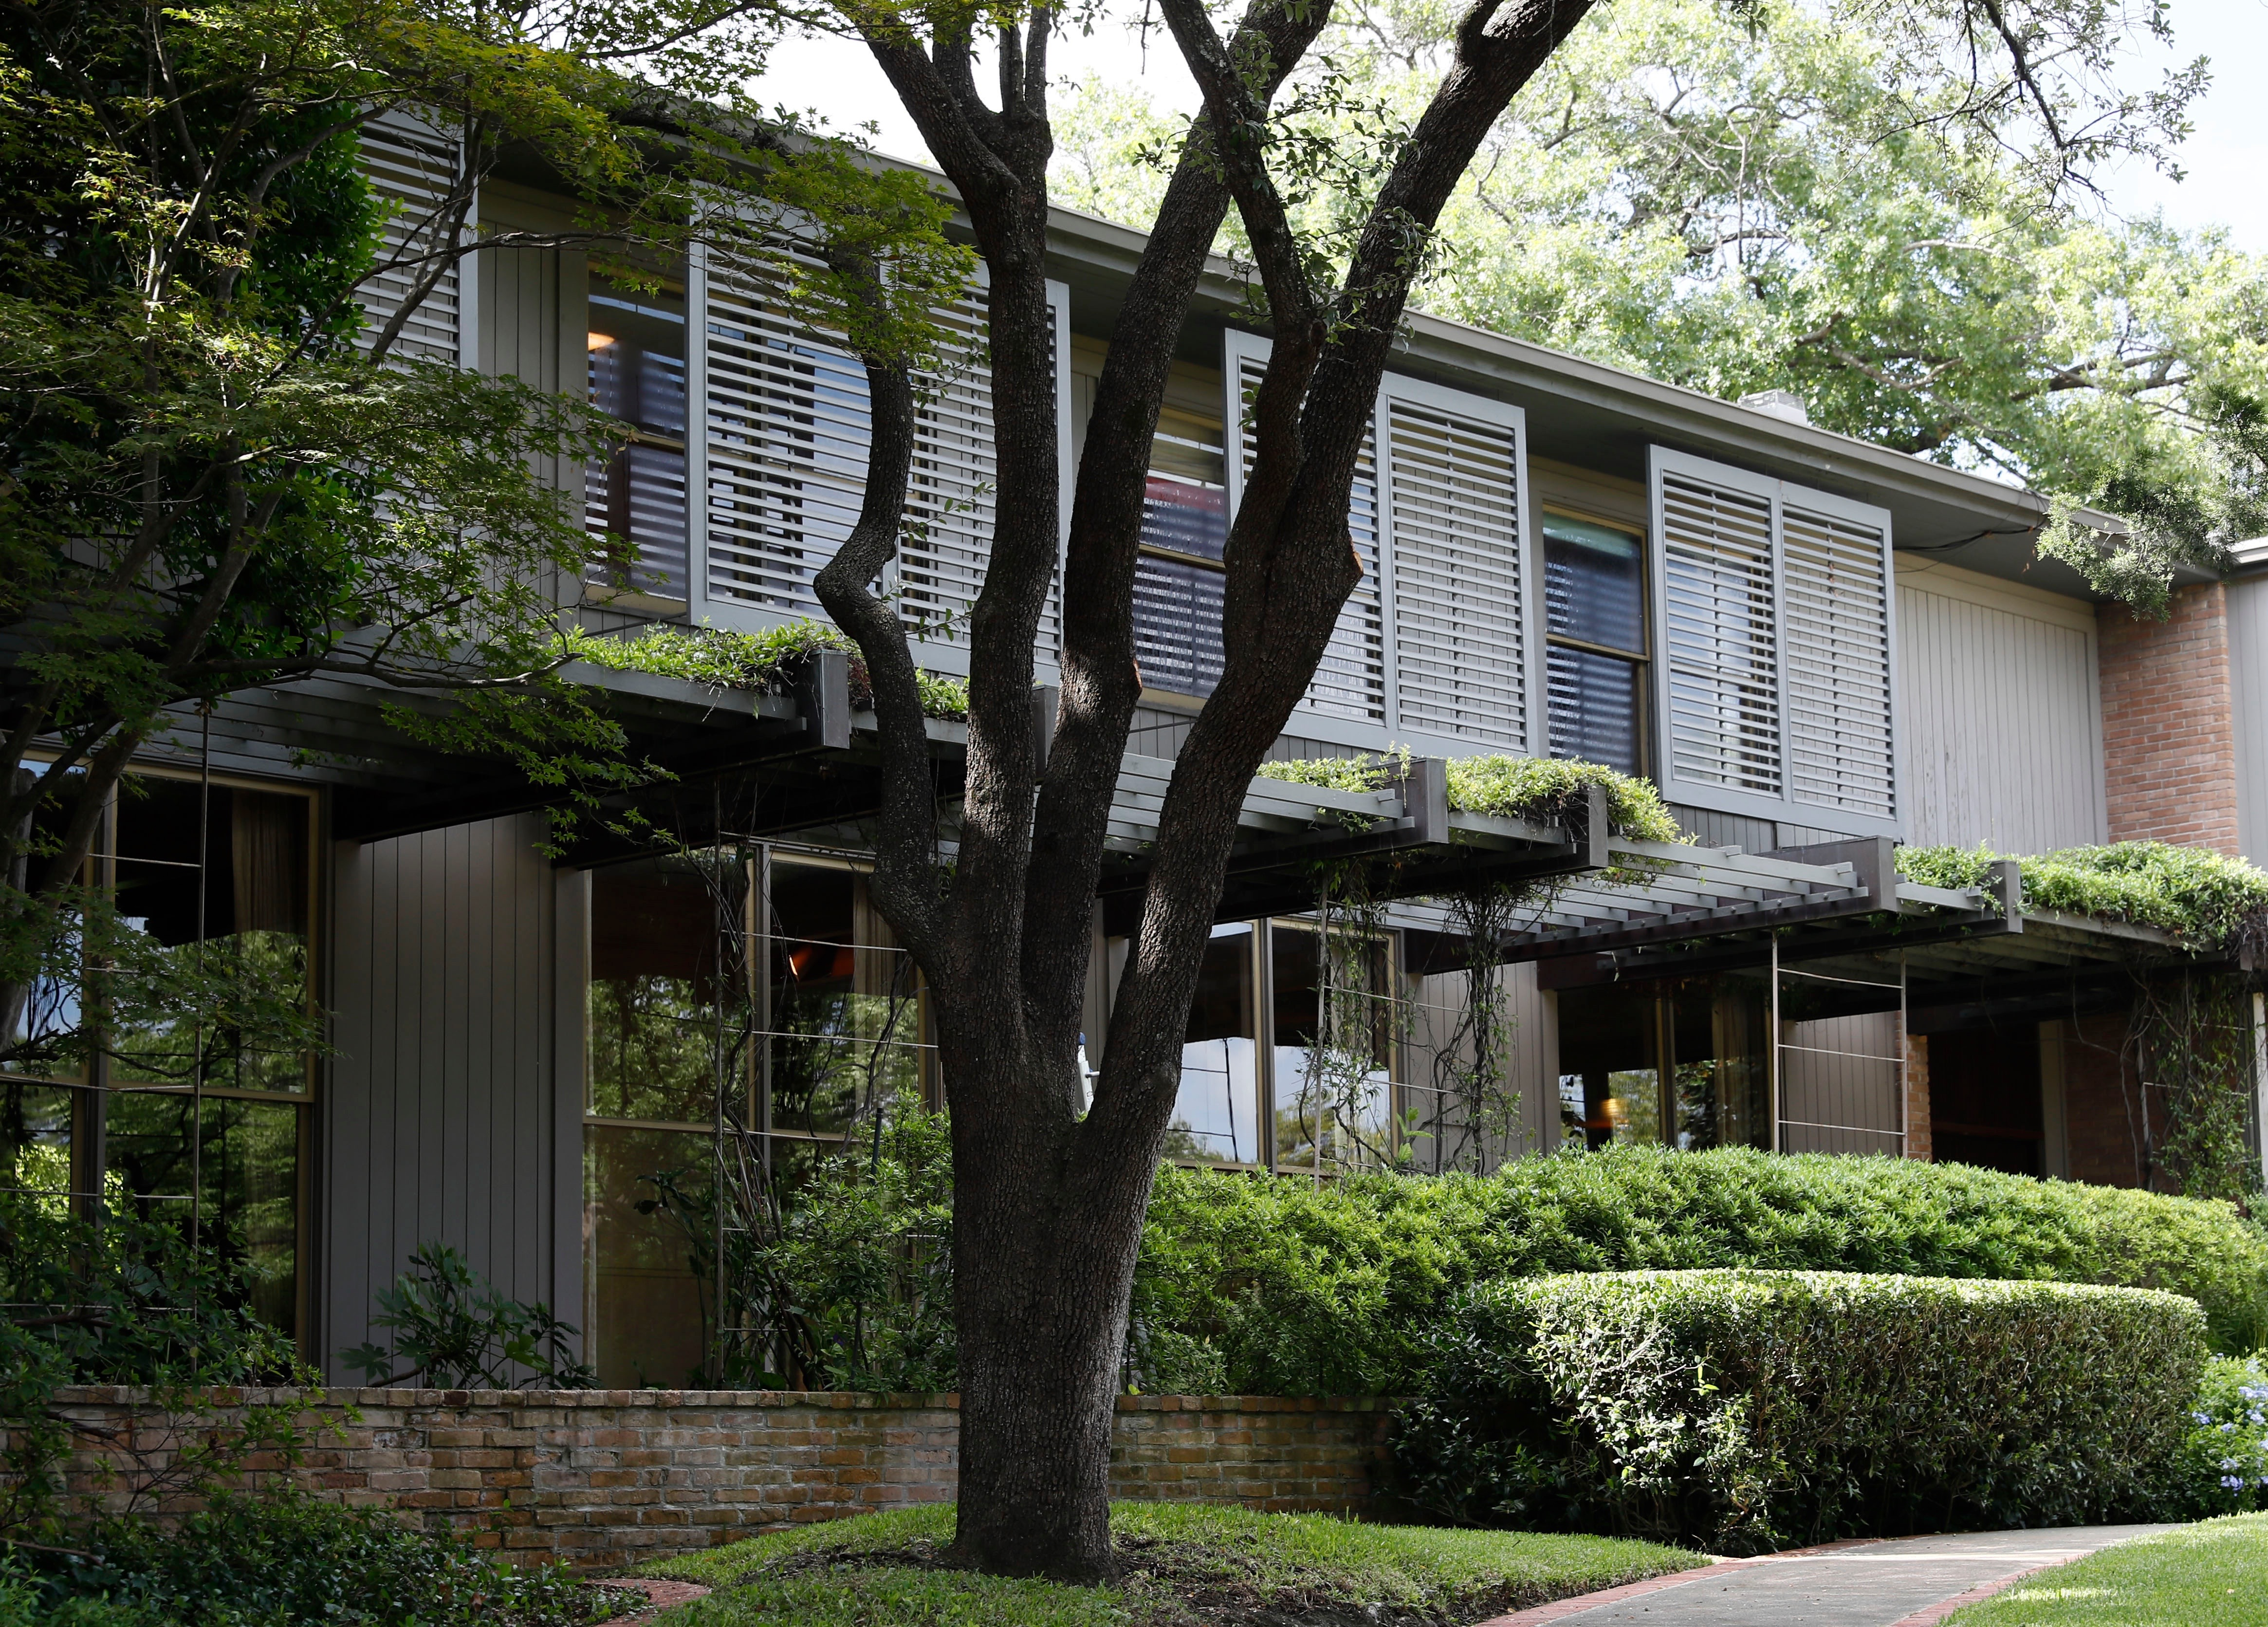 Historic 1950s Dallas Home Up For Auction Along With A Trip Back In Time